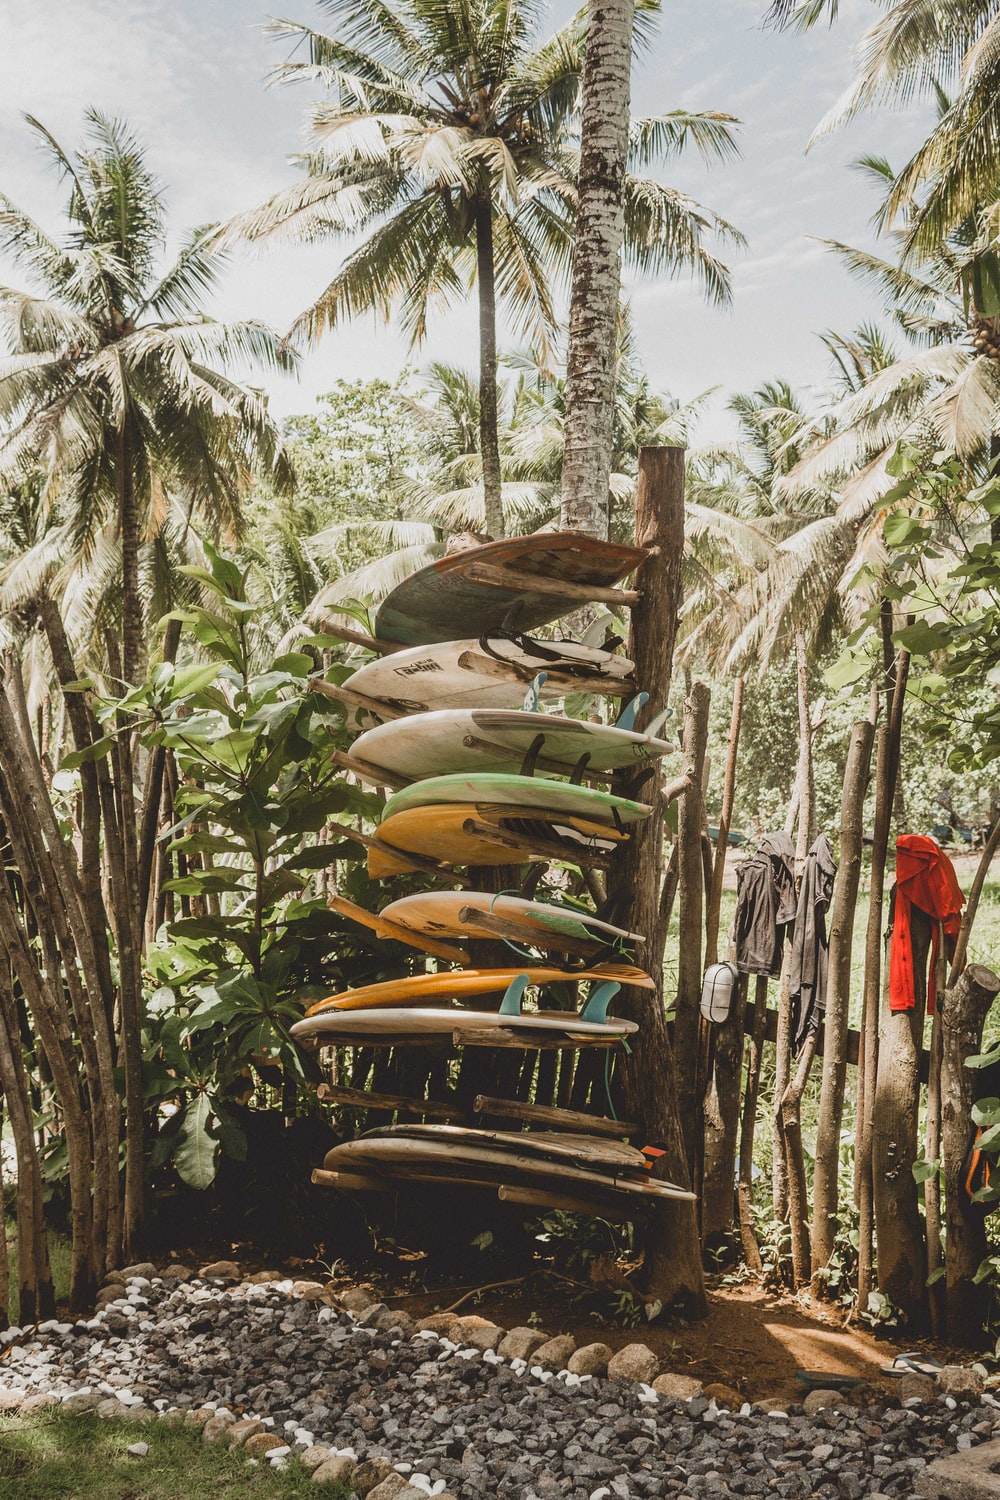 surfboards on rack